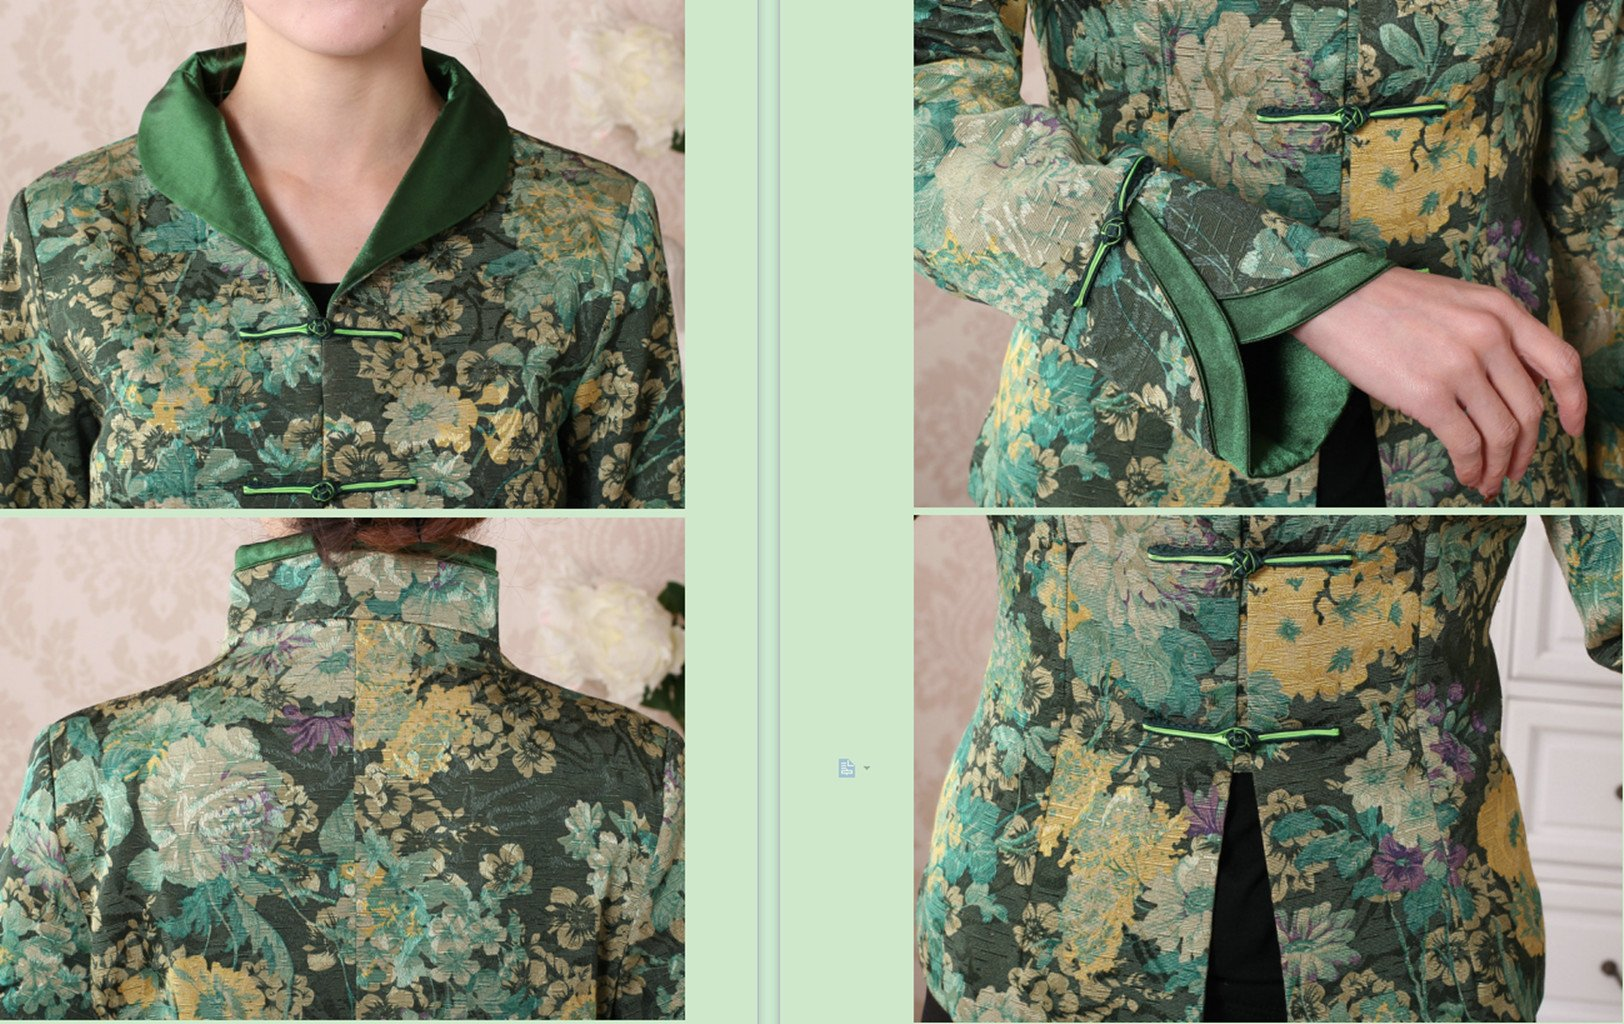 Womens Tang Suits Chinese Style Coats Retro Jackets Full Dress Formal Dress Womens Jackets Business Jackets by Womens Tang Suit (Image #6)